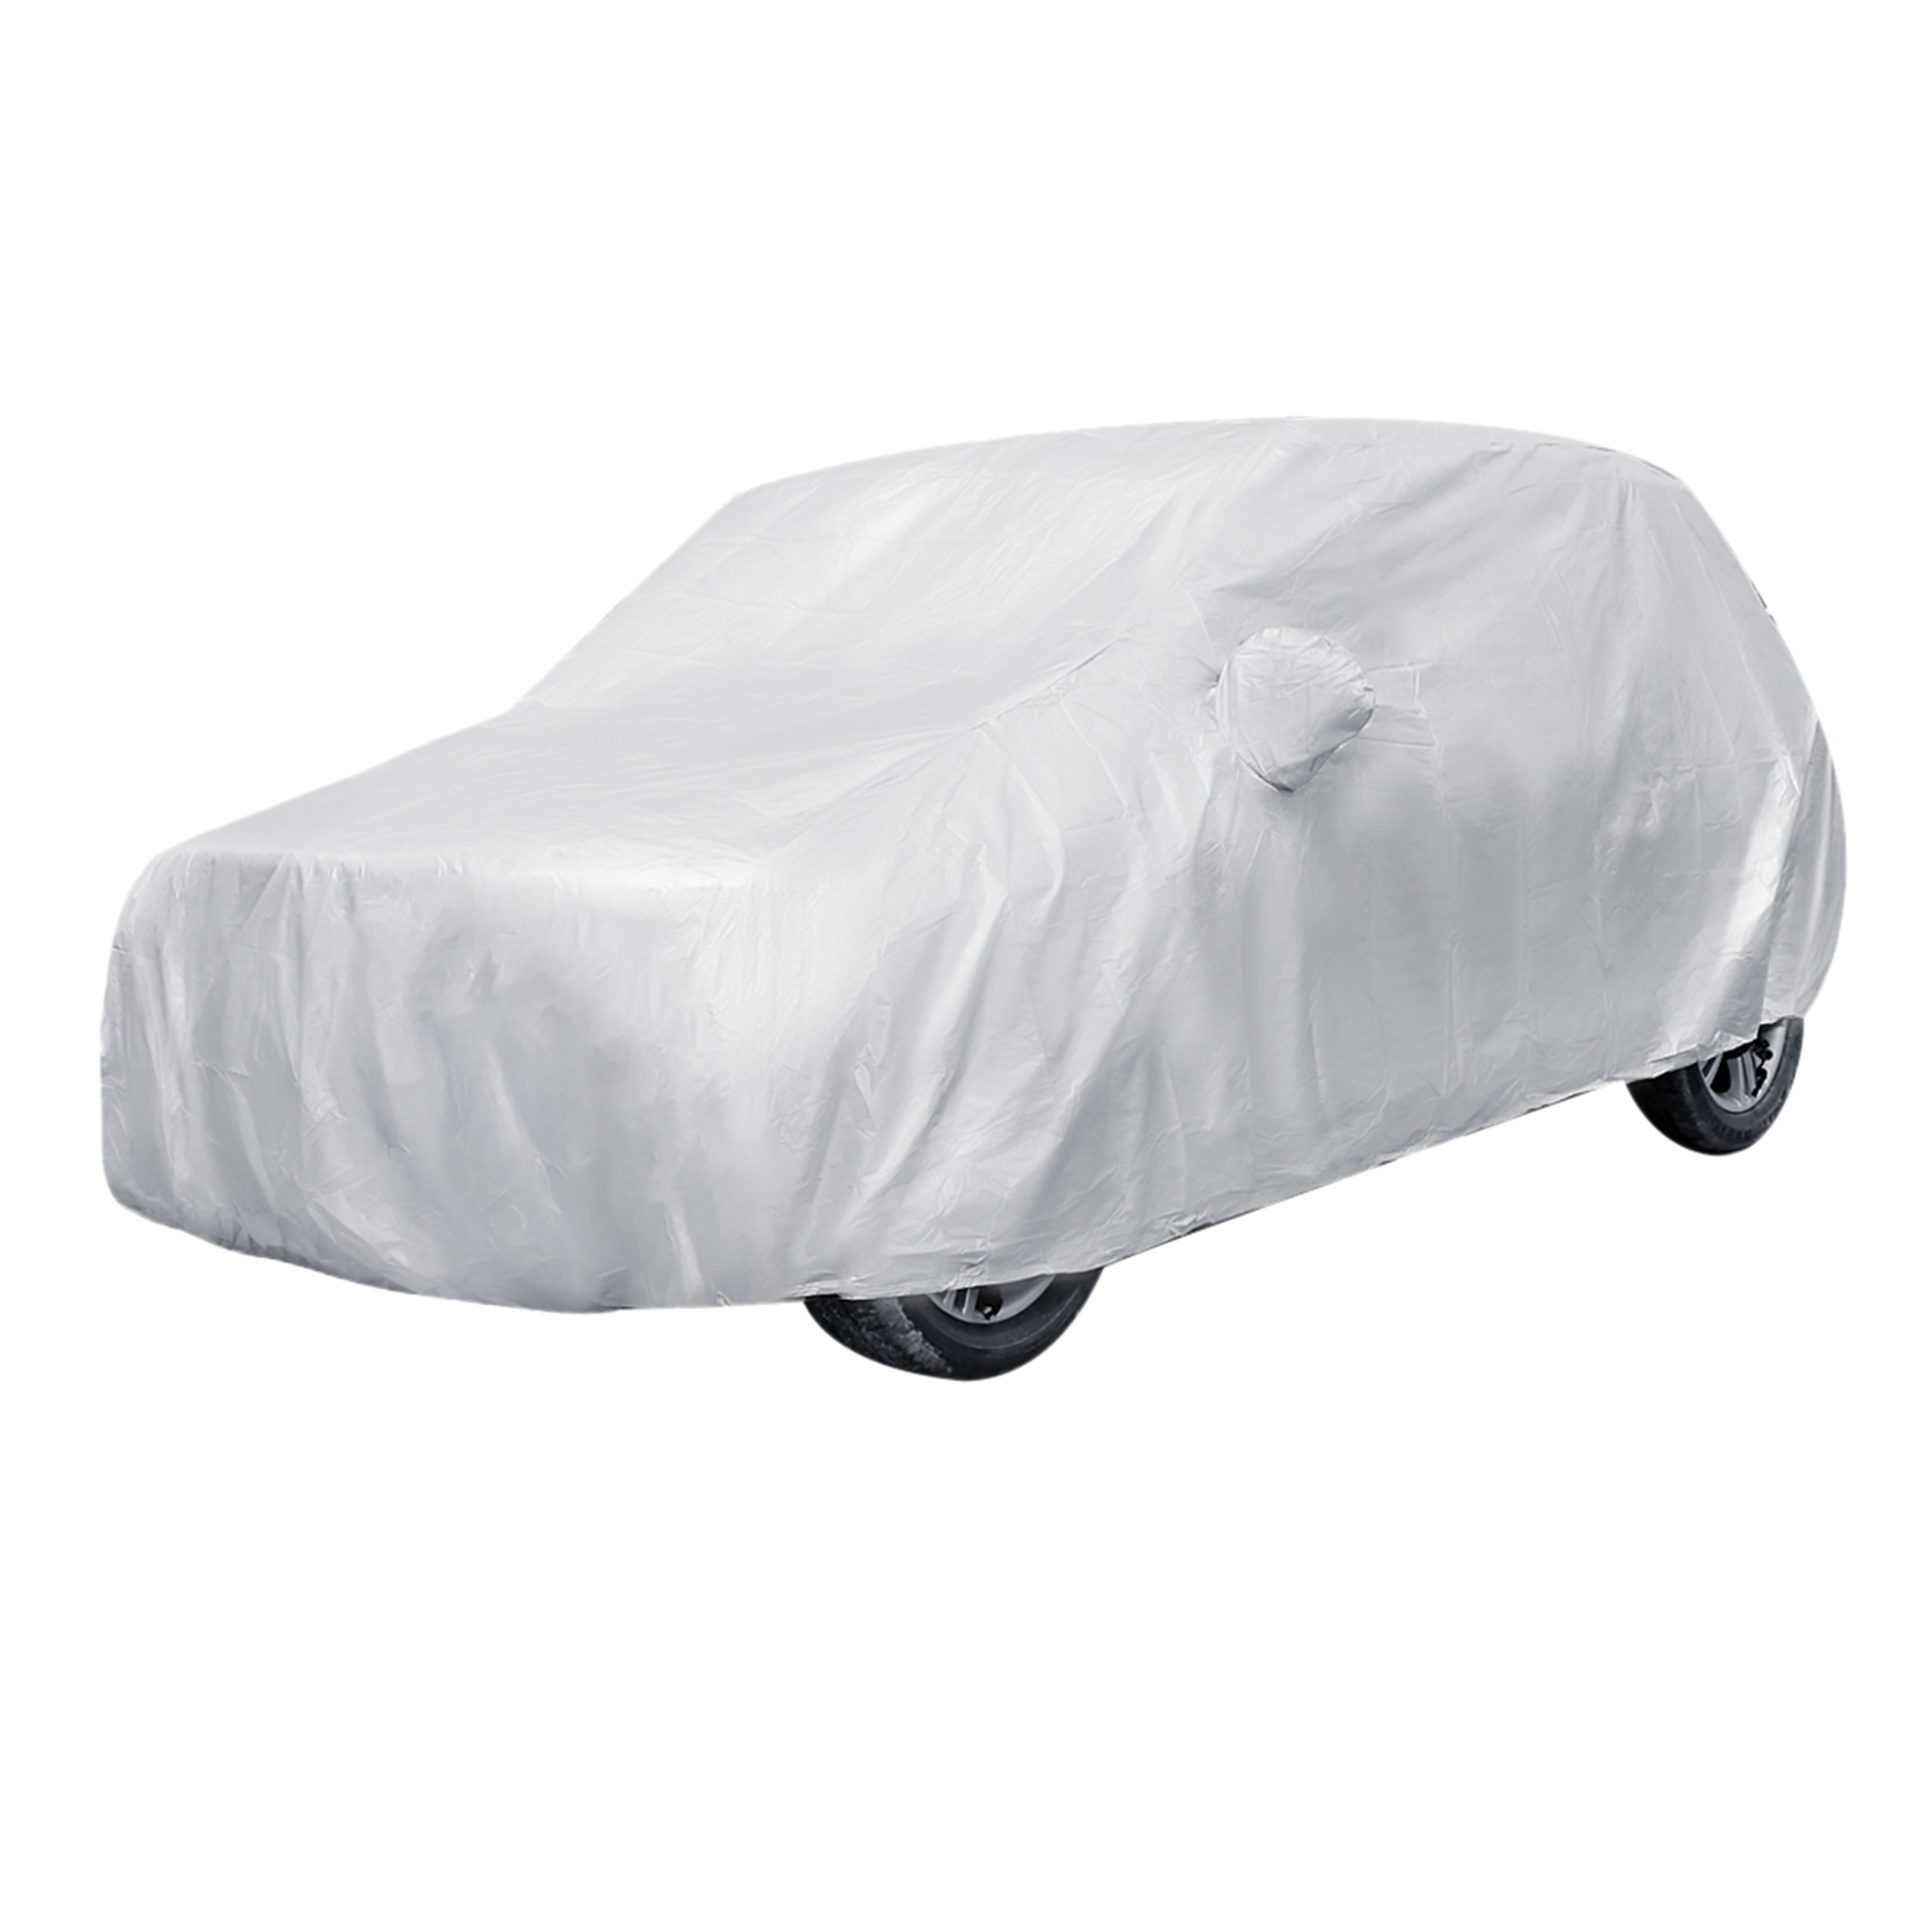 Silver Tone Waterproof Dust Rain Resistant Weather Protective Car Cover Size YXL 540*175*150cm(L*W*H)